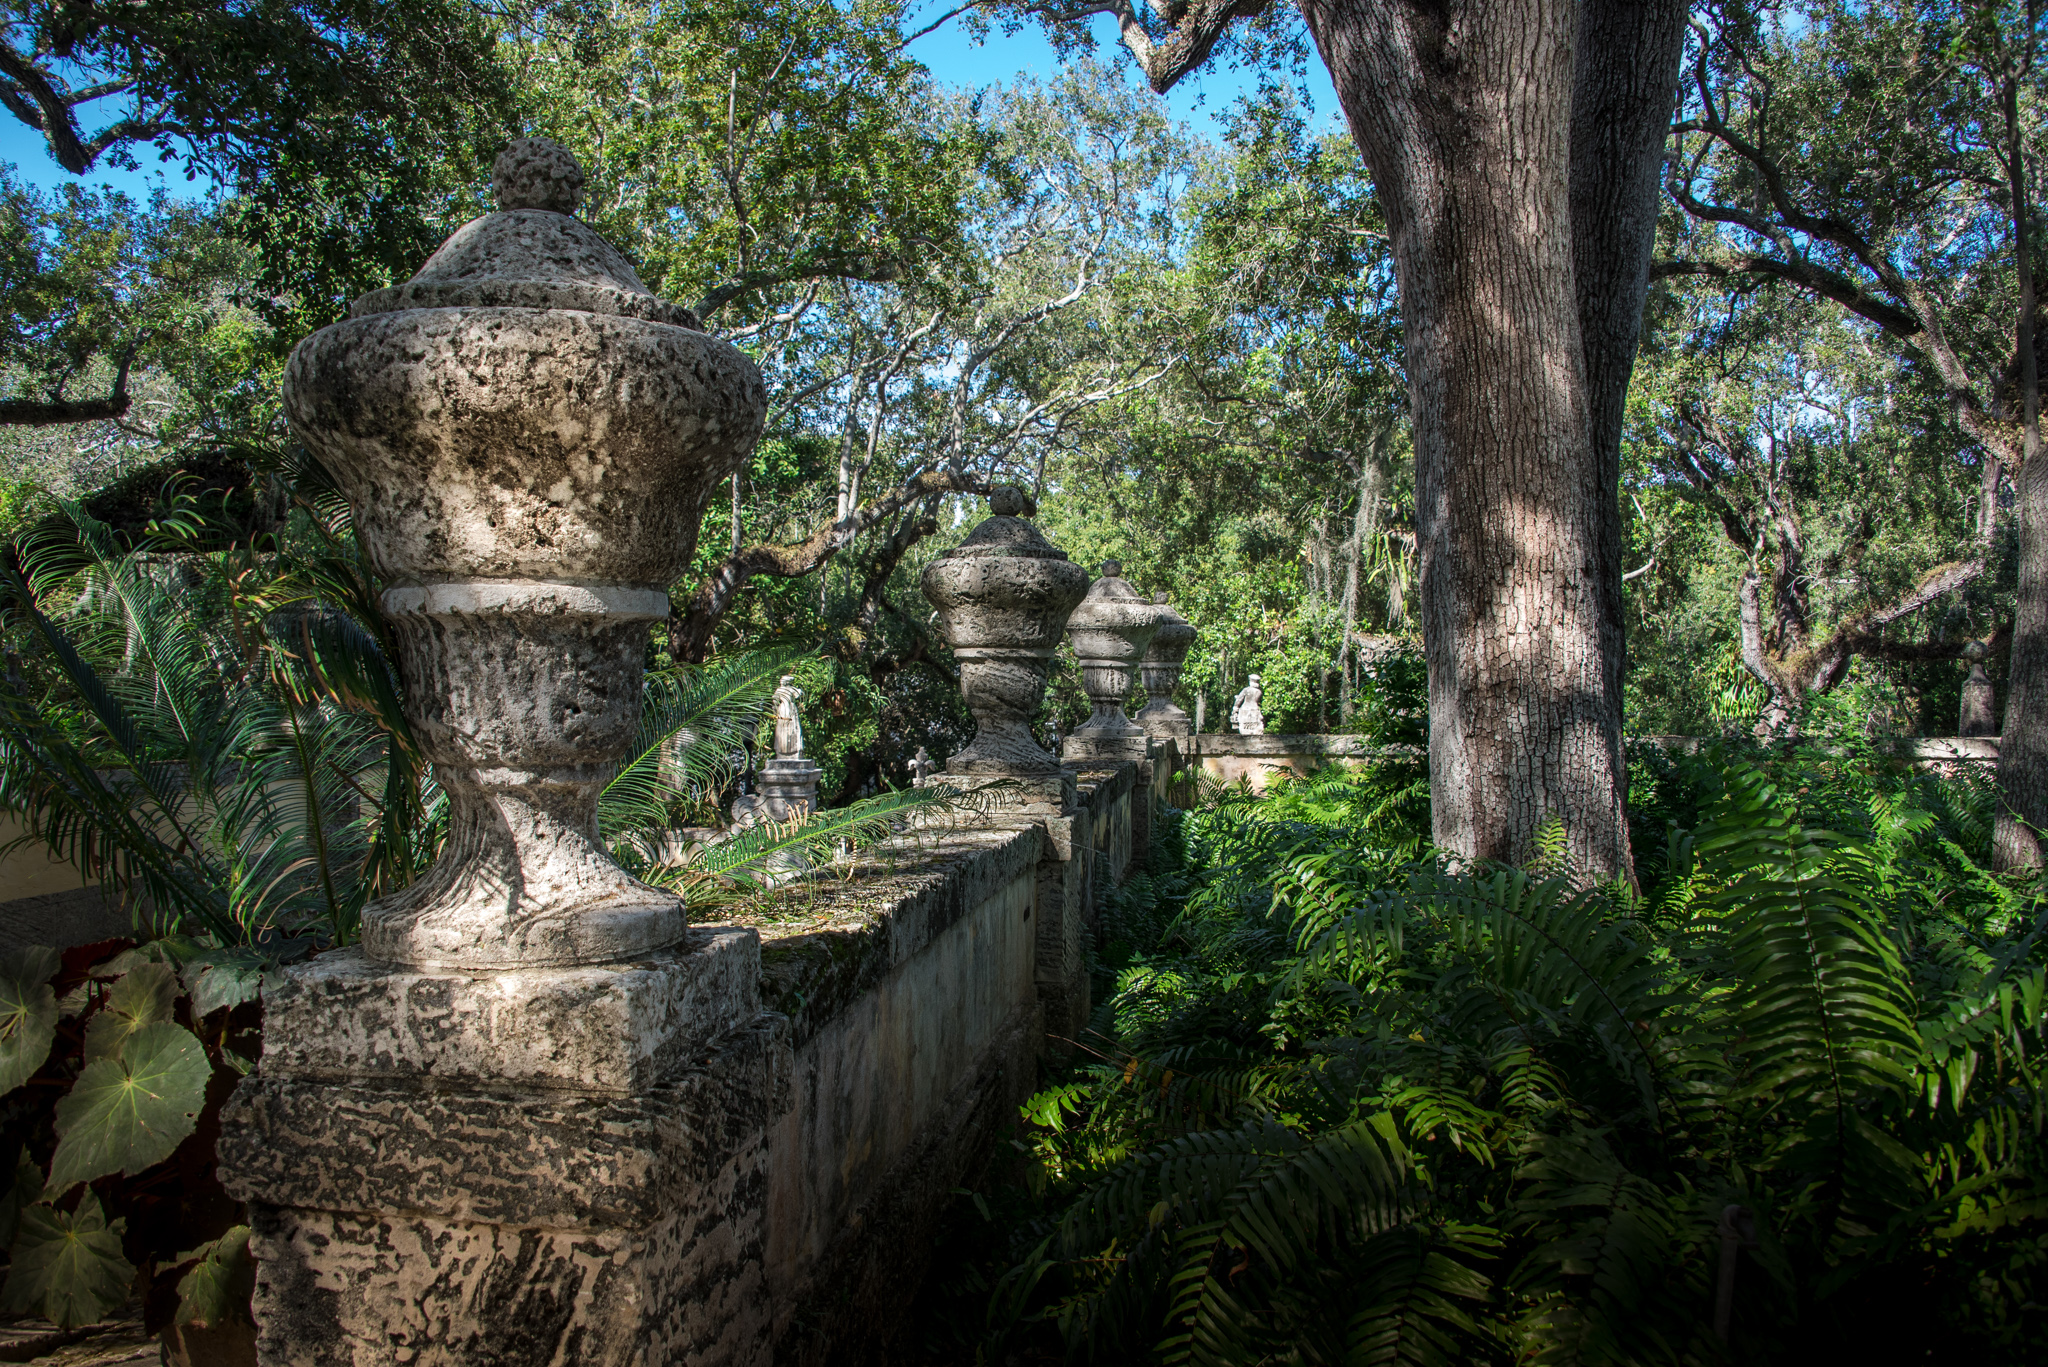 2017-01-15 - Karathedathus At Vizcaya Gardens - 034